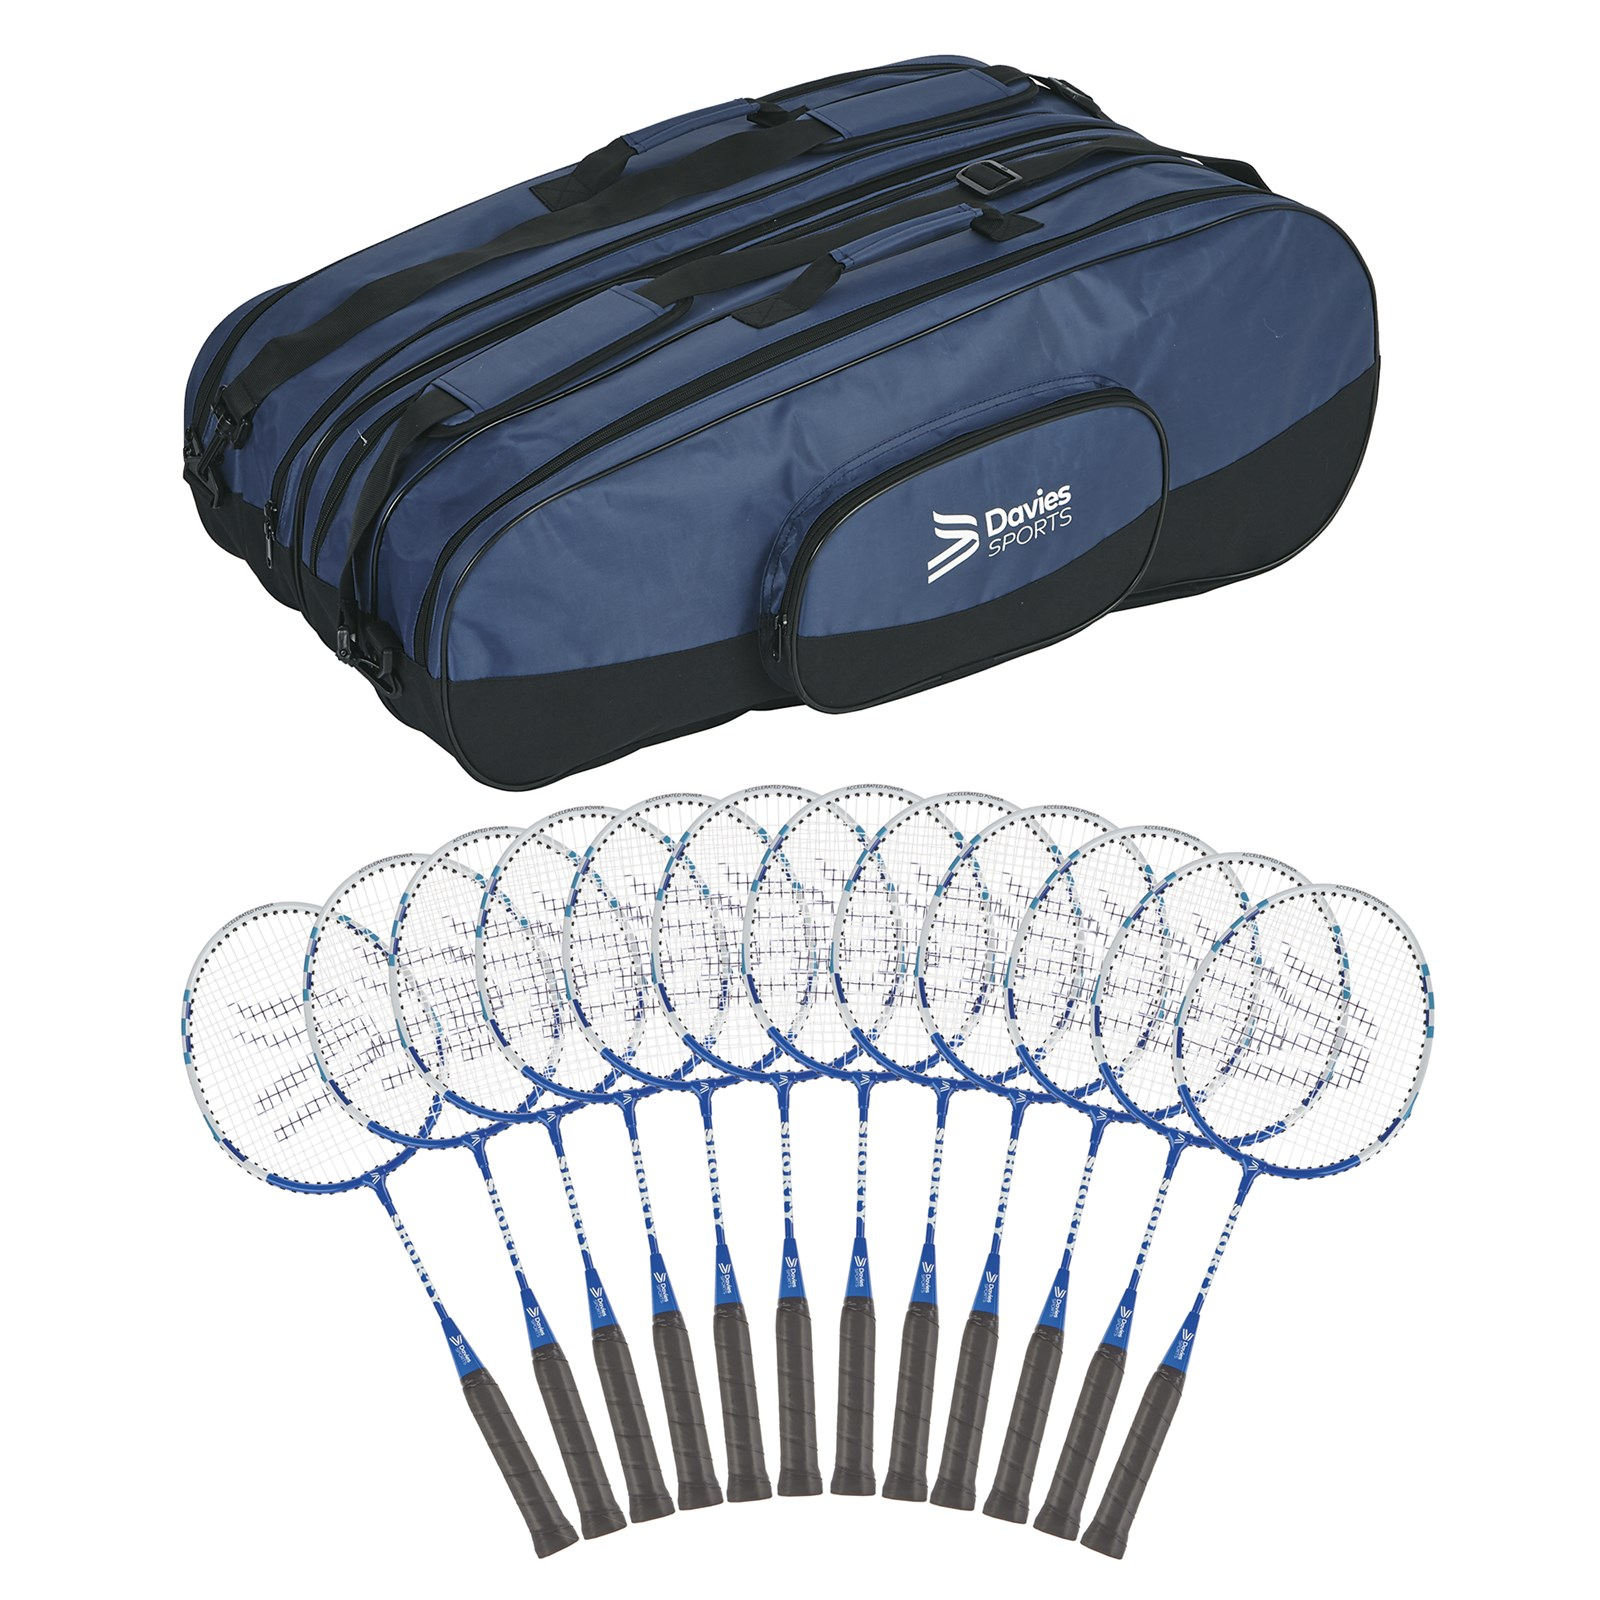 Davies Sports Shorty Racquet - Pack of 12